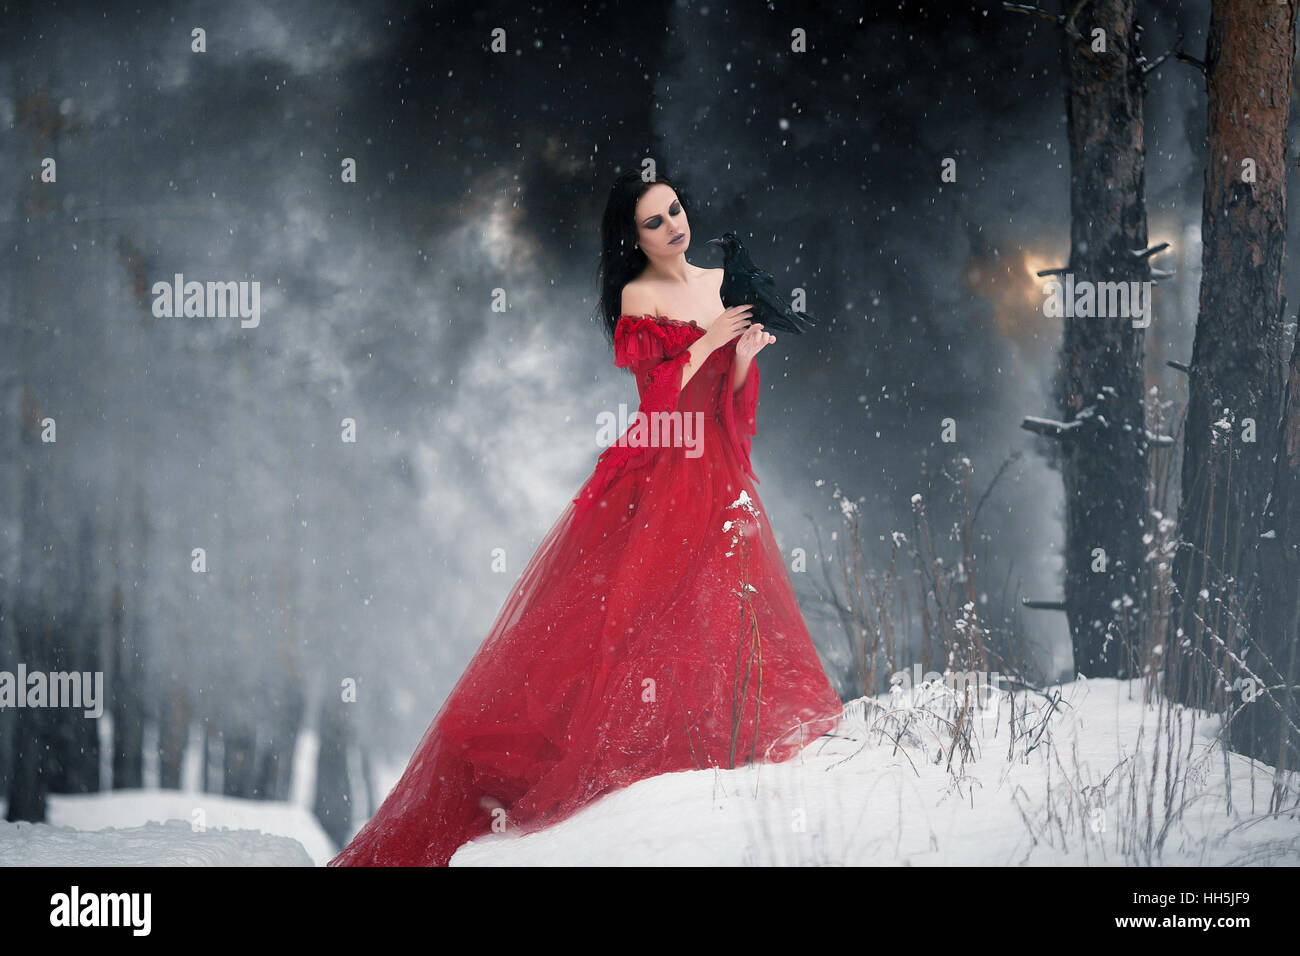 Woman witch in red dress and with raven in her hands in snowy forest ...